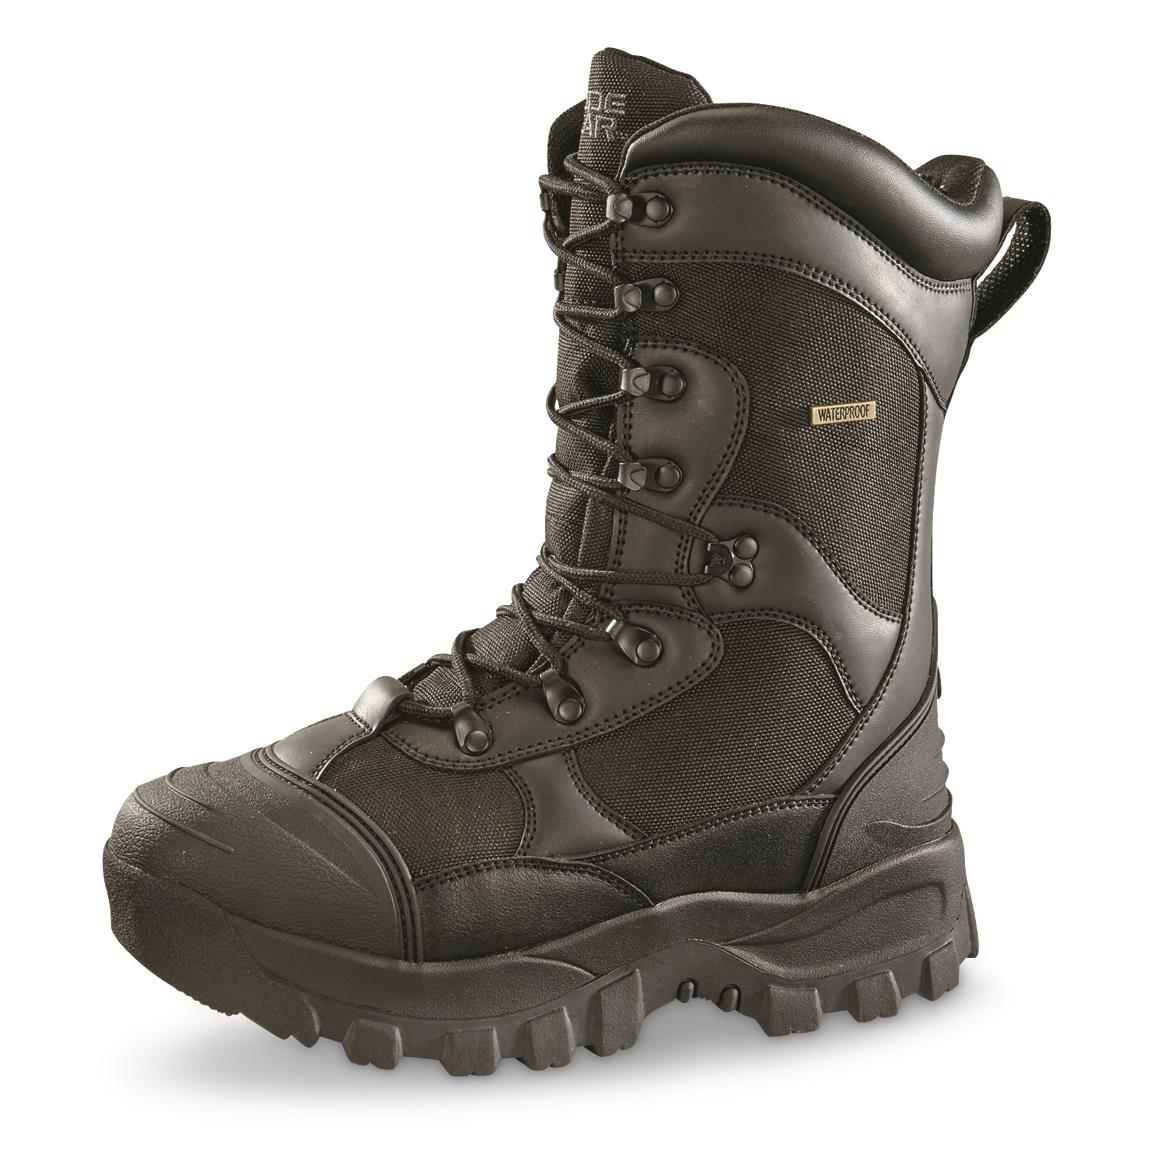 Guide Gear Men's Monolithic Hunting Boots, Insulated, Waterproof, Black